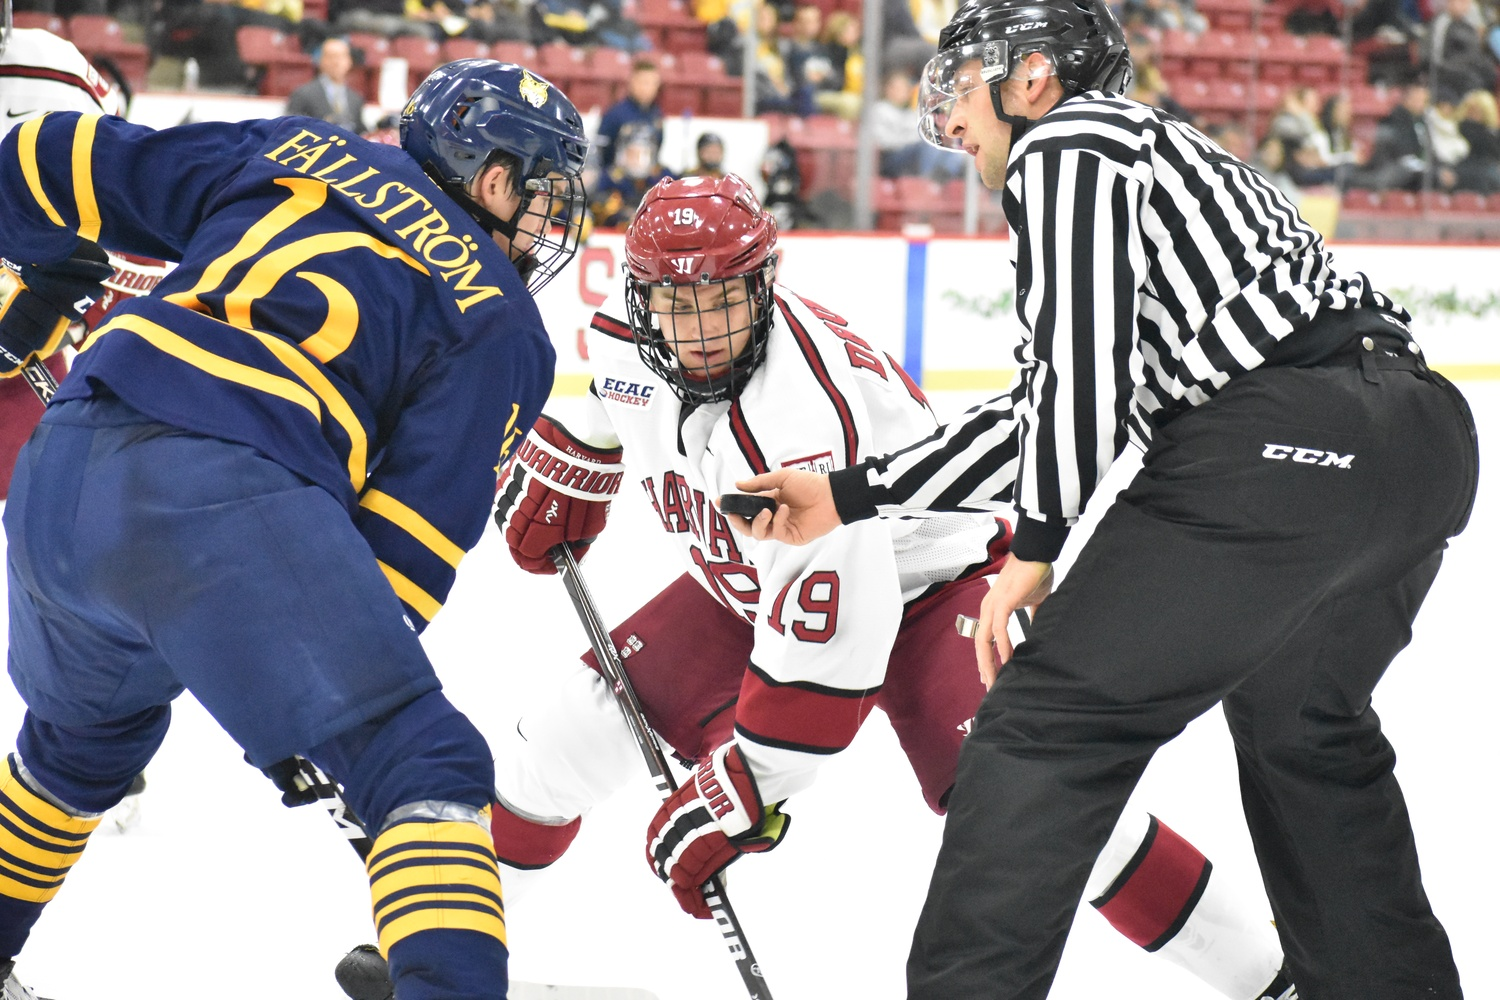 Shuffling of the lines after last weekend's loss against Dartmouth saw rookie Jack Drury centering the team's top line, alongside freshman Casey Dornbach and sophomore Henry Bowlby.